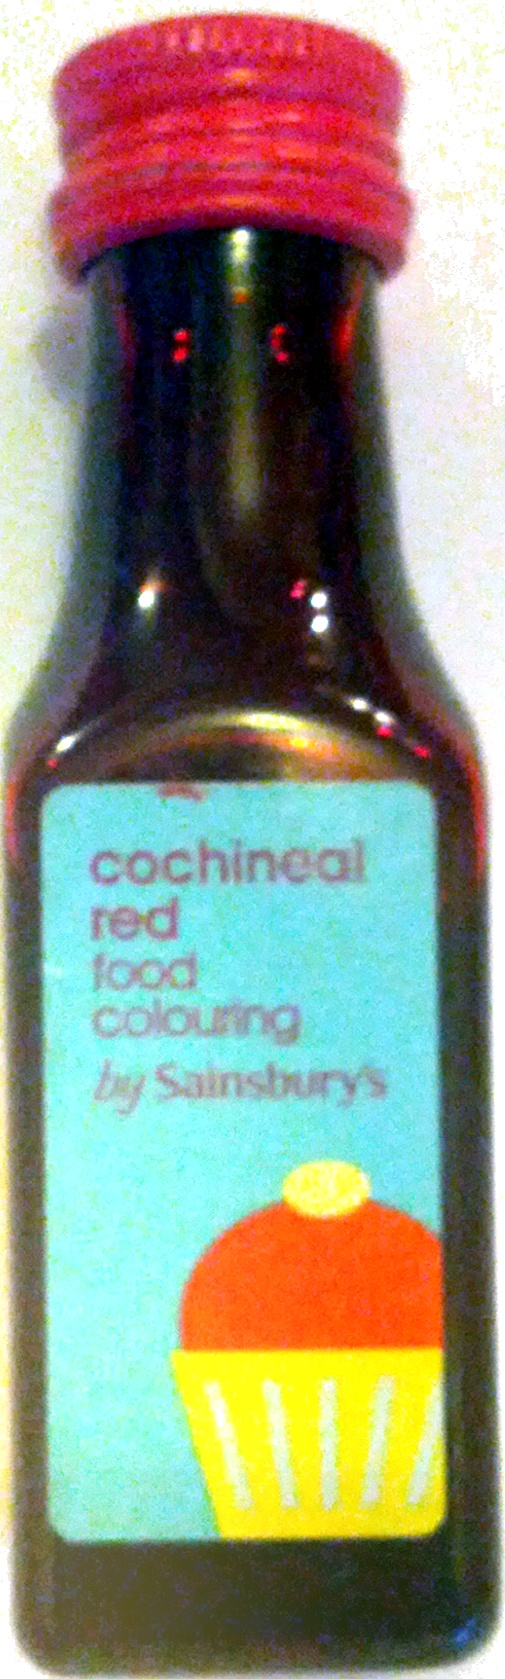 Cochineal Red Food Colouring - Product